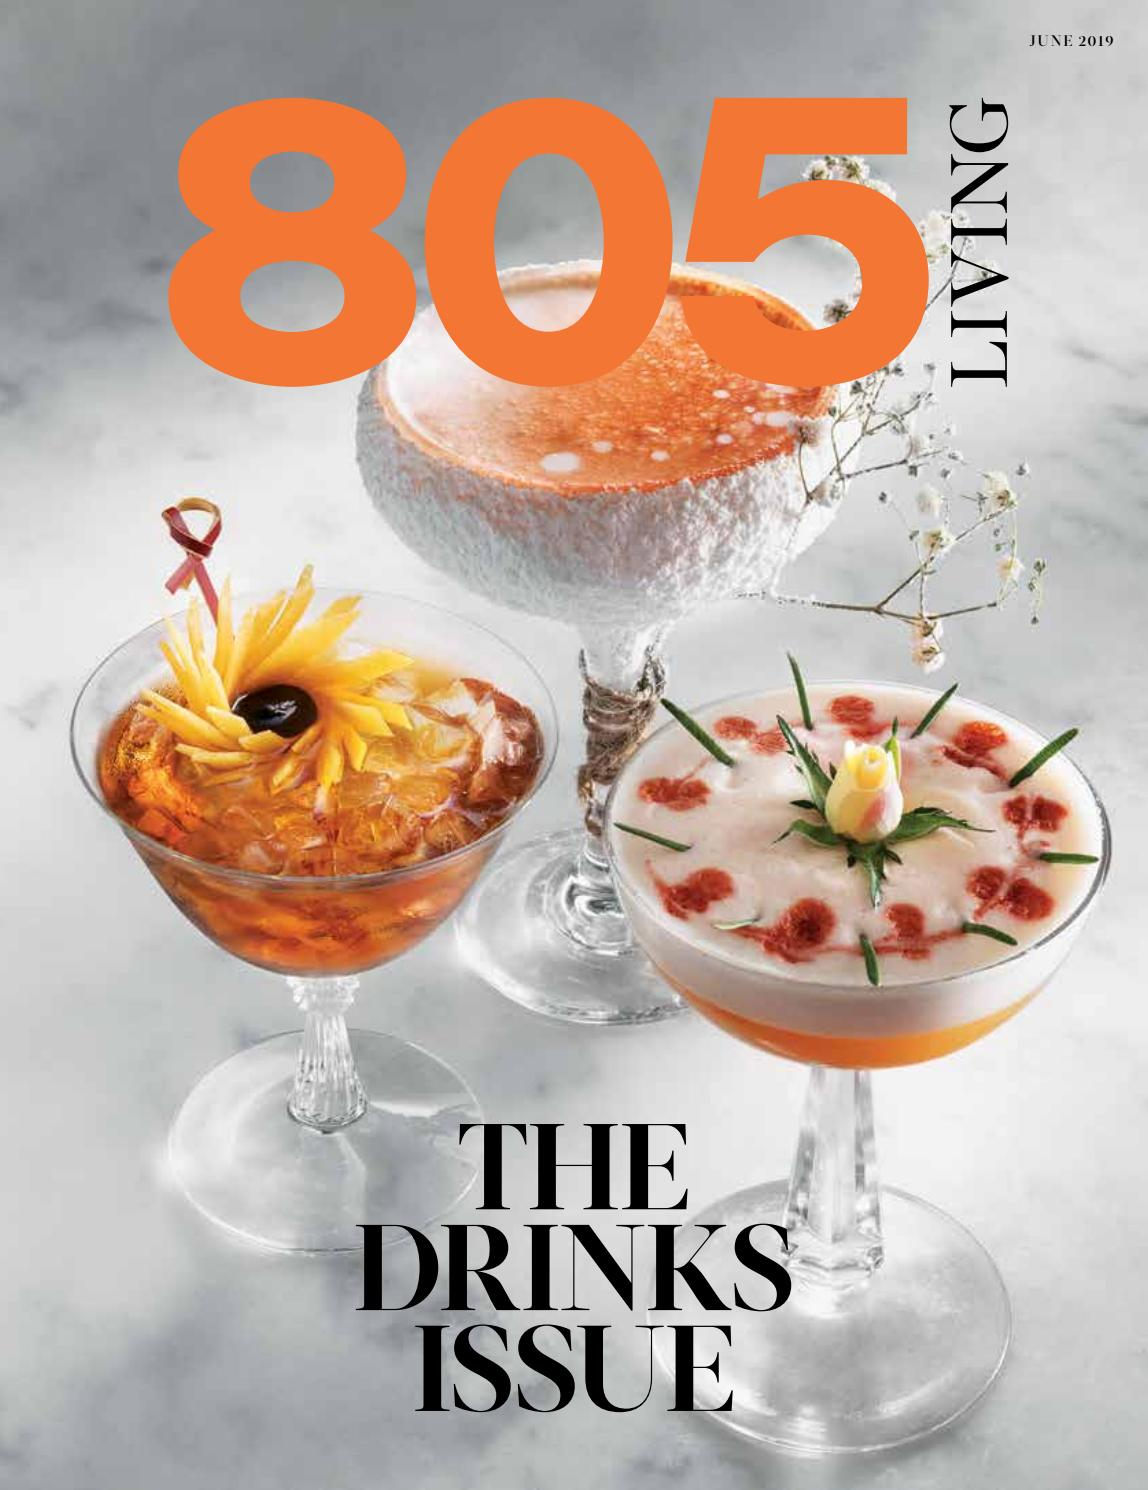 805 Living June 2019 by 805 Living - issuu